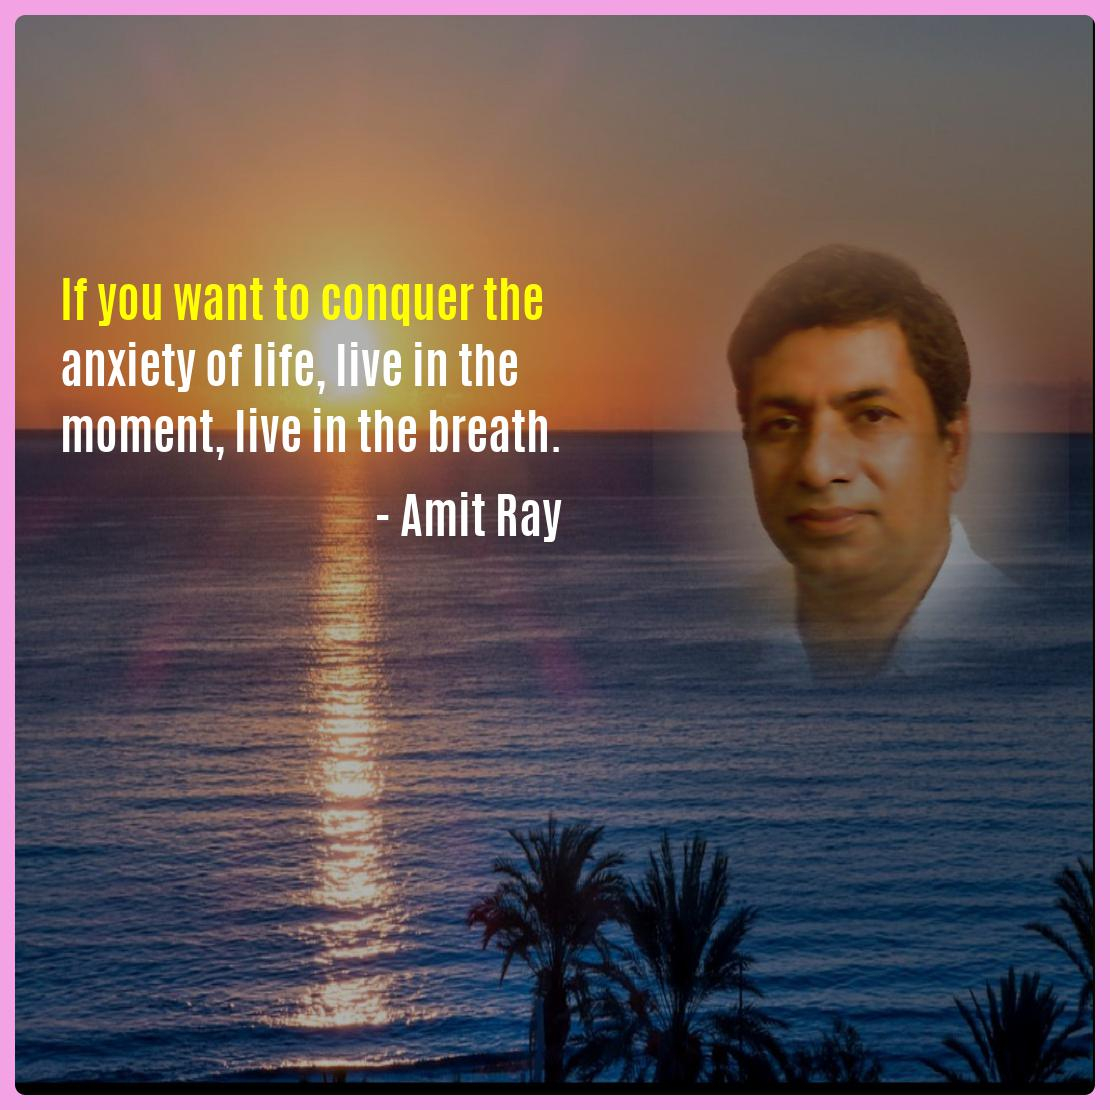 If you want to conquer the anxiety of life, live in the moment, live in the breath. -- Amit Ray